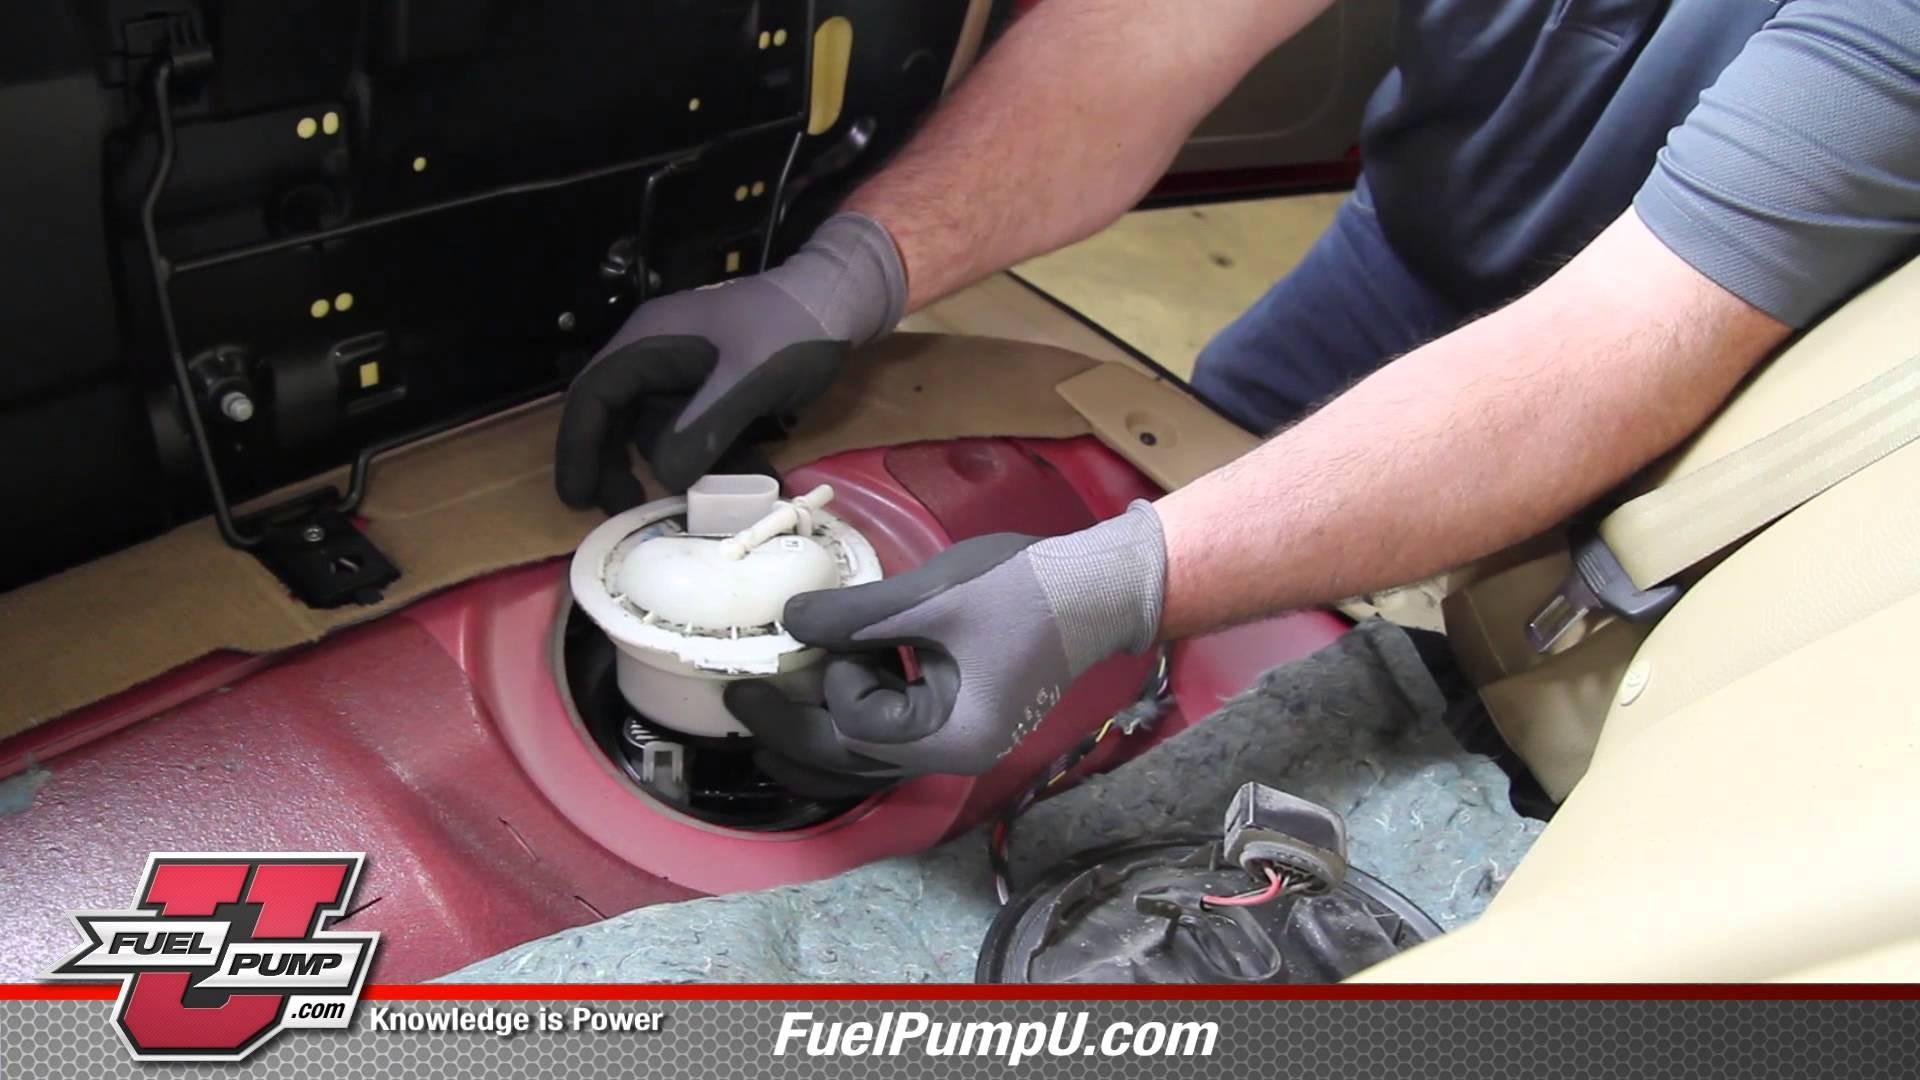 2001 Vw Passat Engine Diagram How to Install Fuel Pump assembly E8738m In A 2006 2010 Volkswagen Of 2001 Vw Passat Engine Diagram